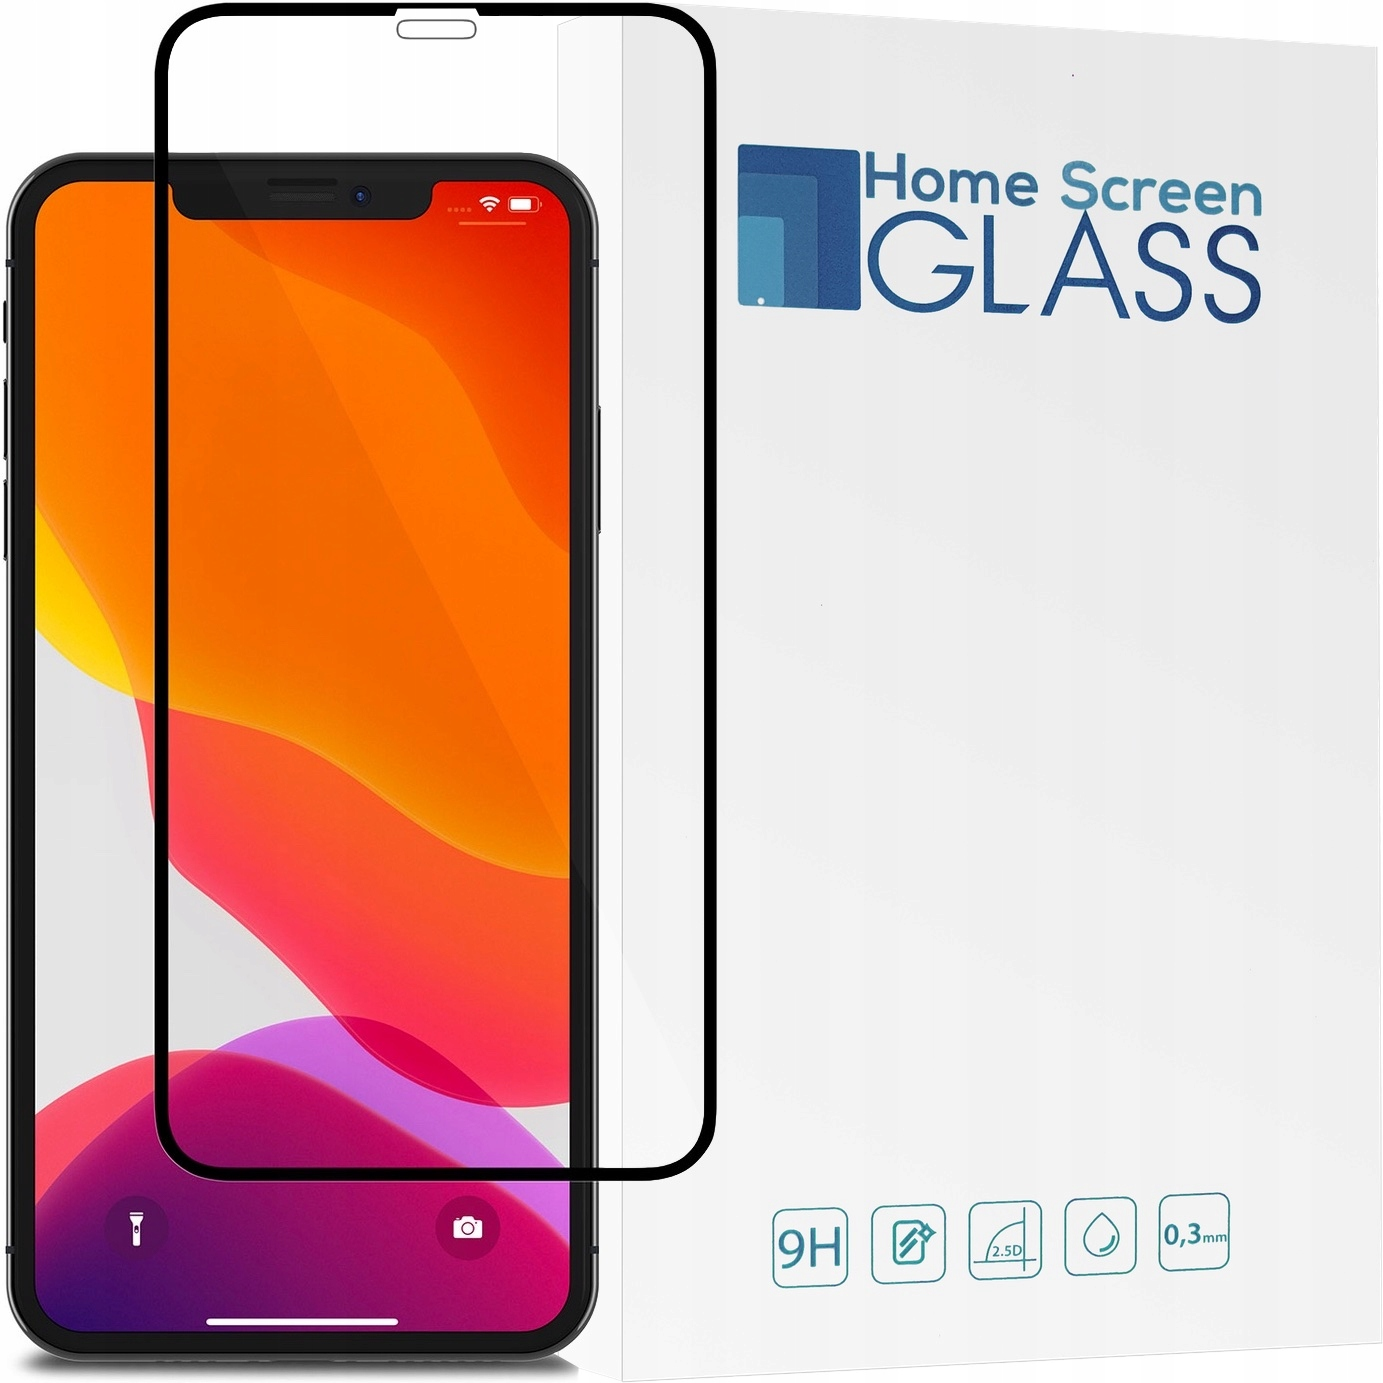 Hs Glass Szkło Hart 3D Cały Ekran Do Iphone 11 6,1